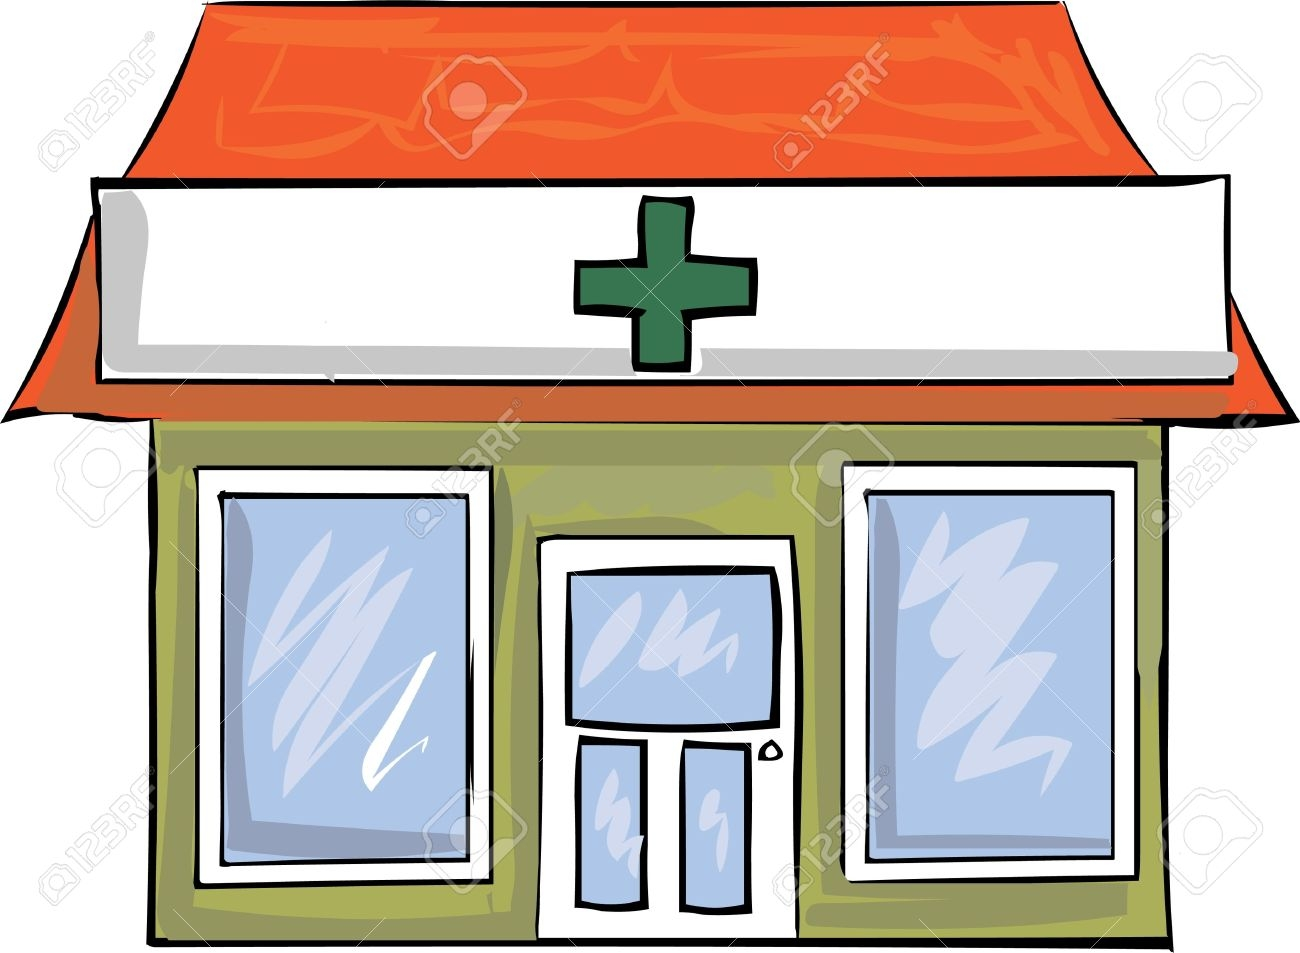 Pharmacy building clipart svg free stock Pharmacy Building Clipart | Free download best Pharmacy ... svg free stock